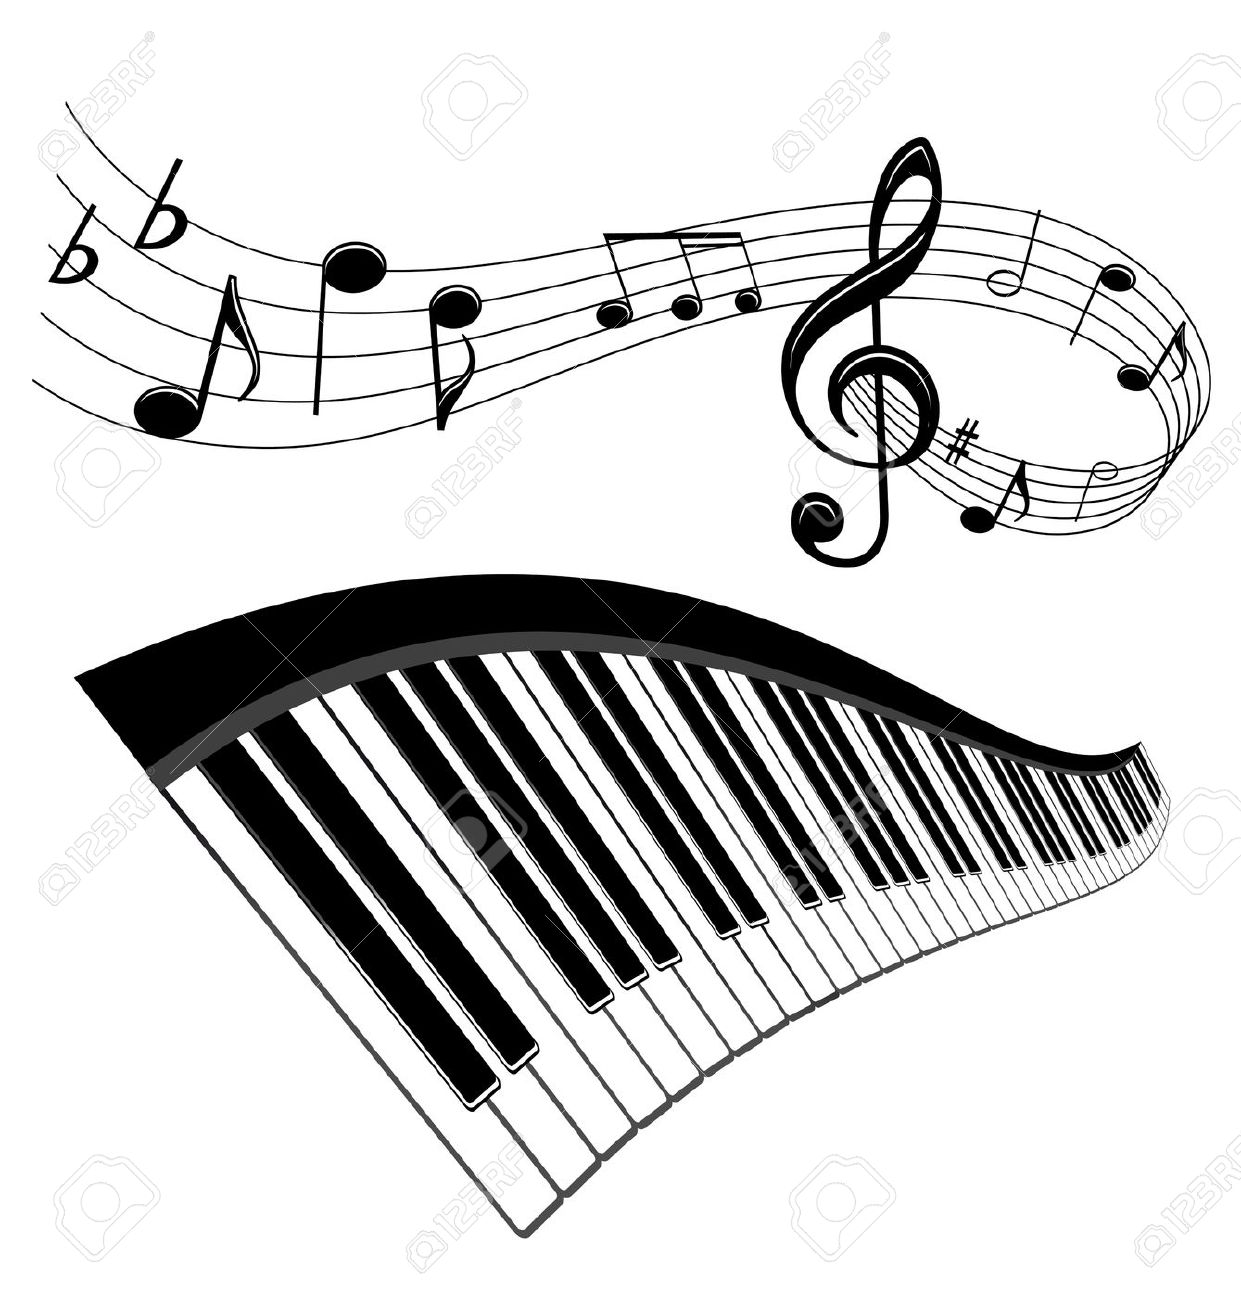 Piano And Notes With Music Elements For Musical Design Royalty.